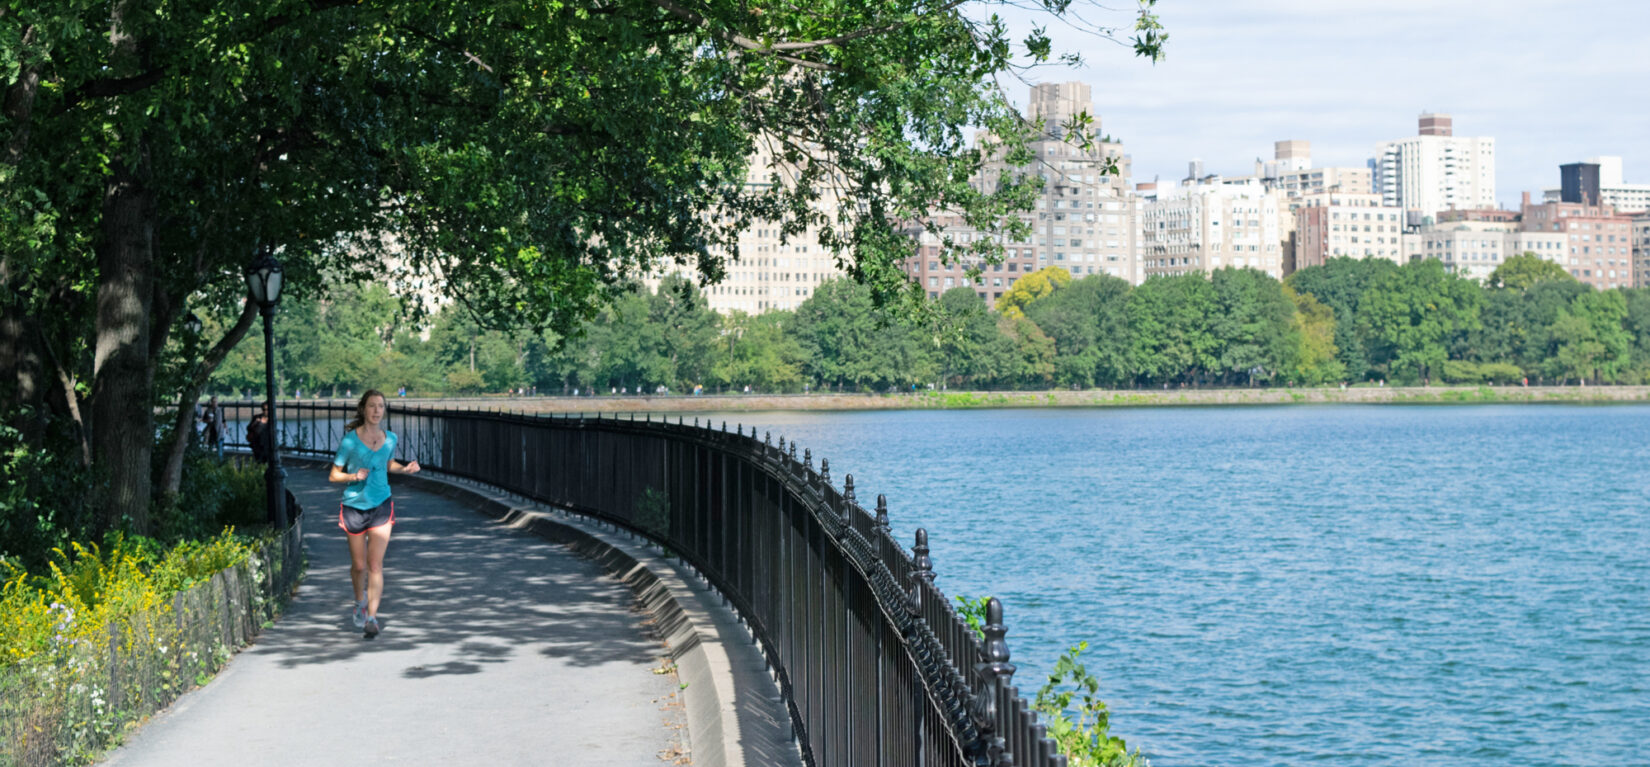 A woman jogs around the Reservoir on the Shuman Running Track